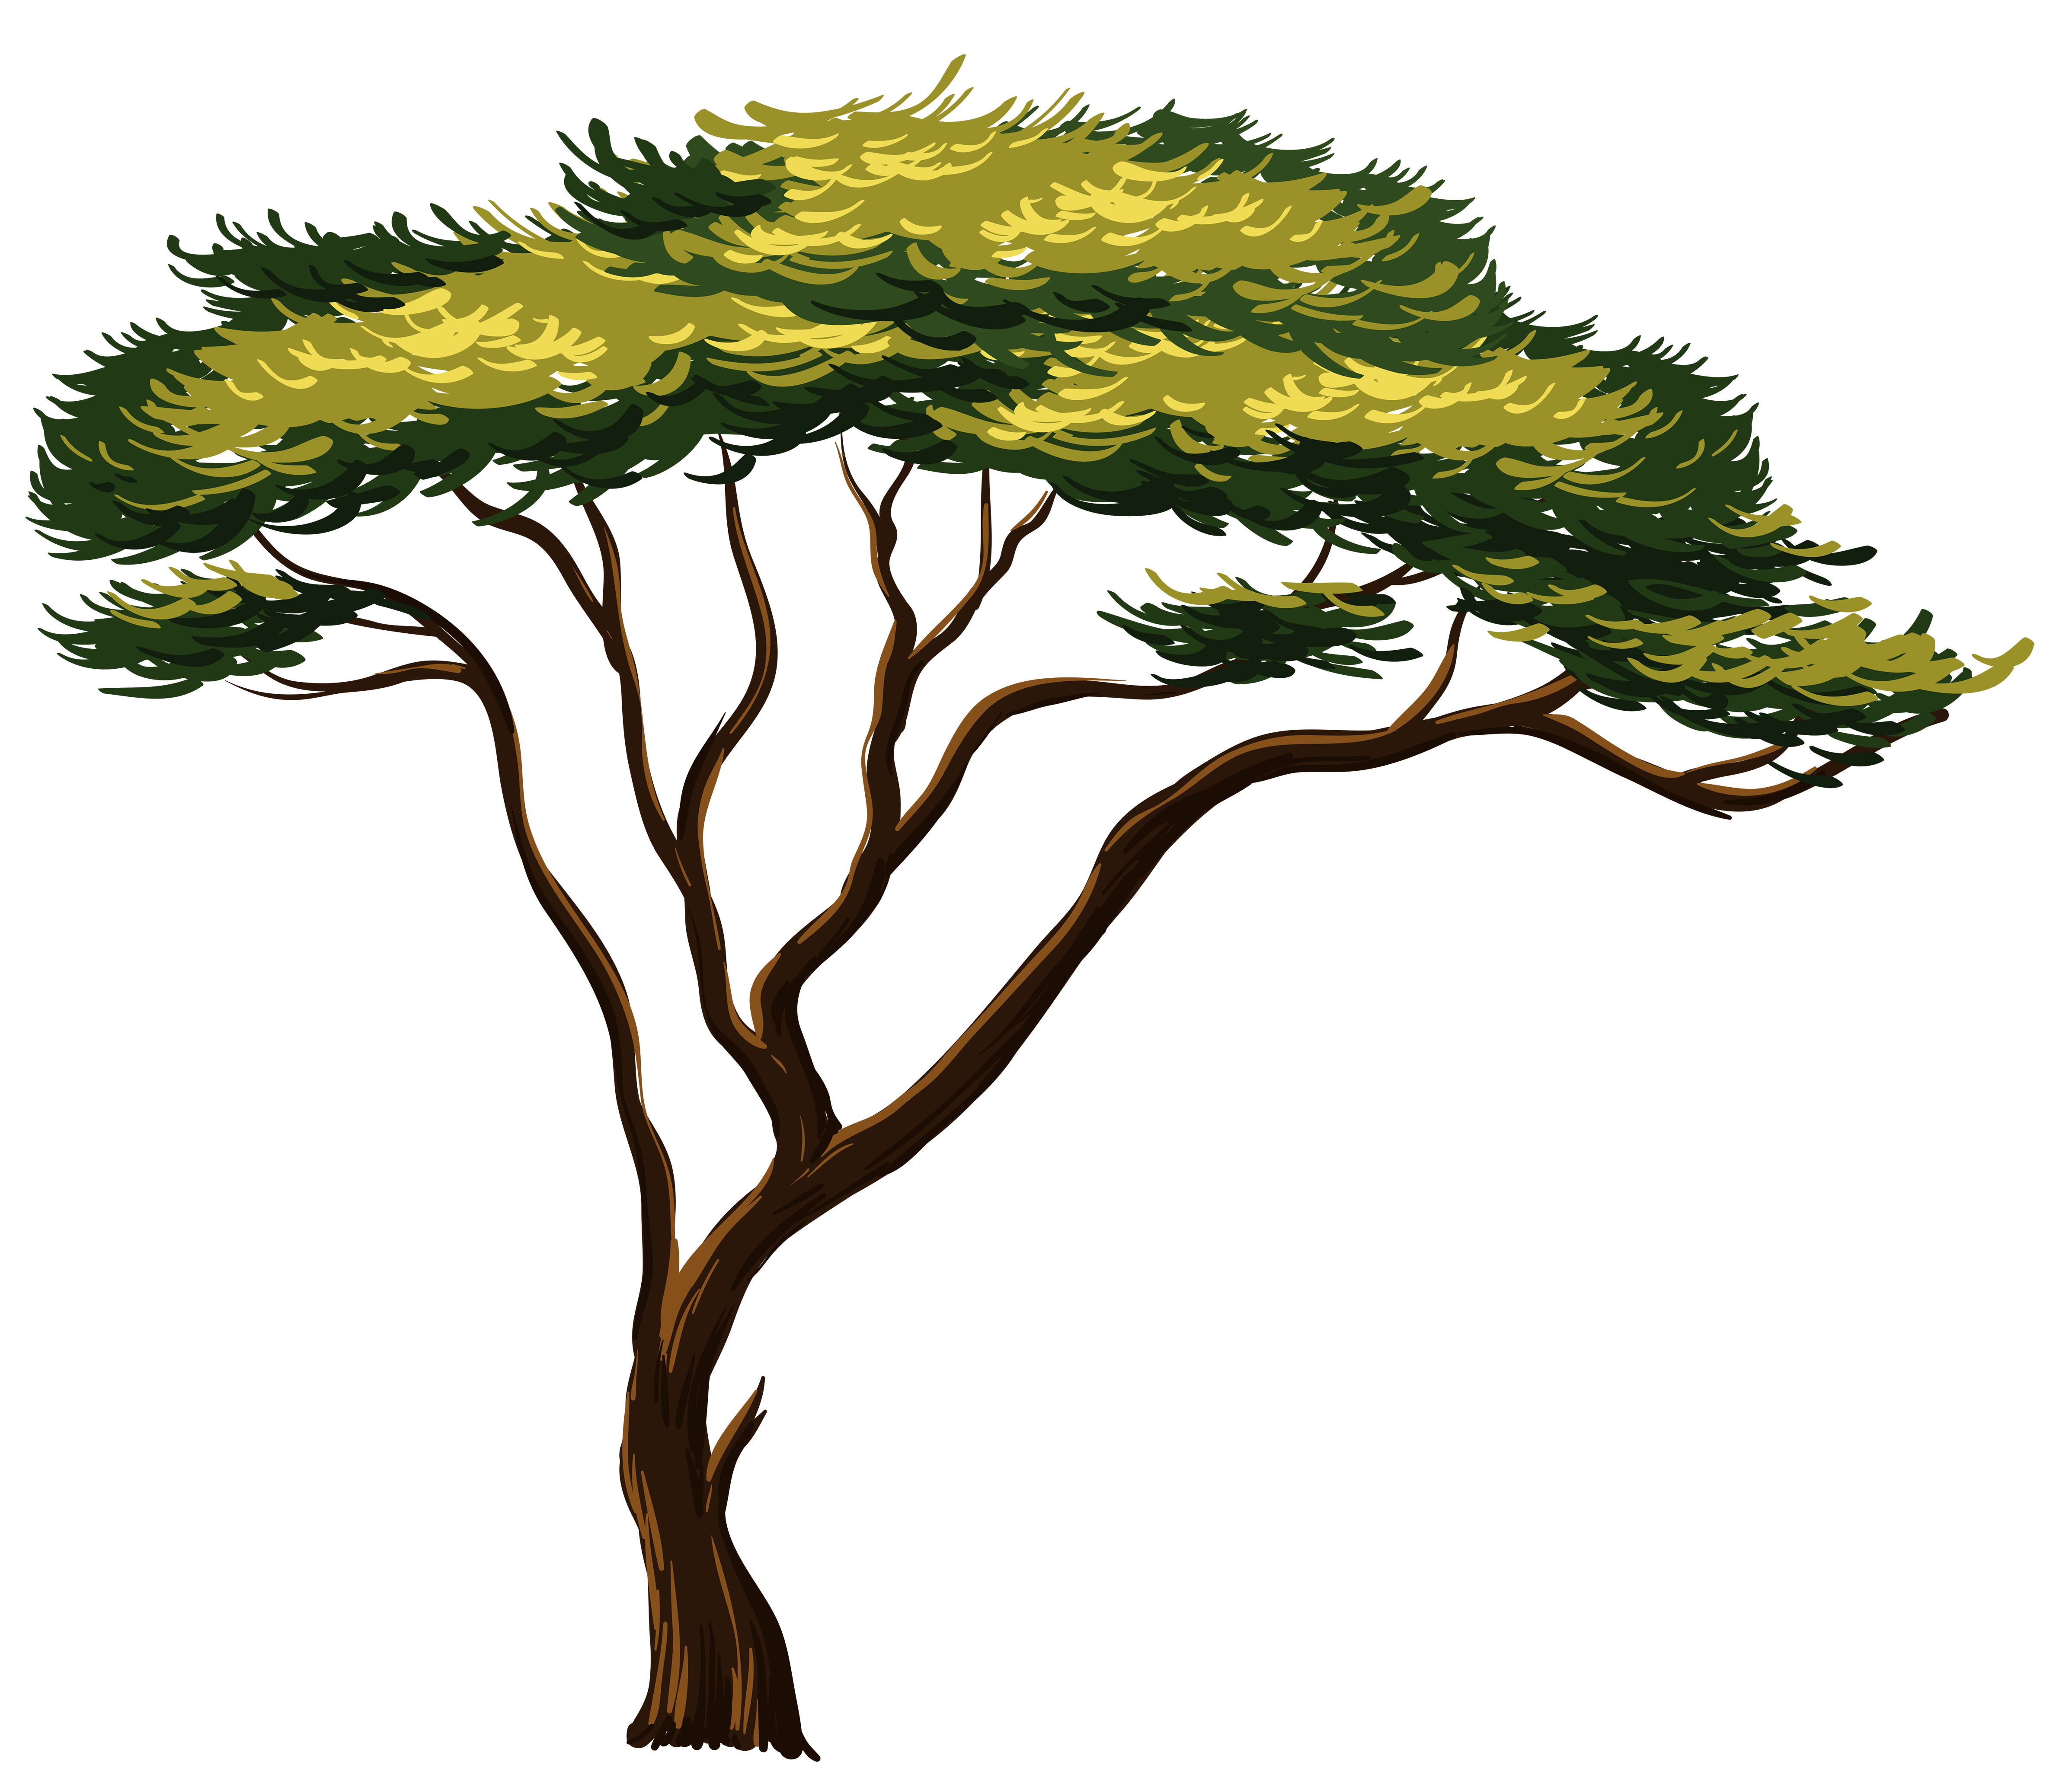 African jungle vine clipart clip library library Jungle Trees Clipart | Free download best Jungle Trees Clipart on ... clip library library